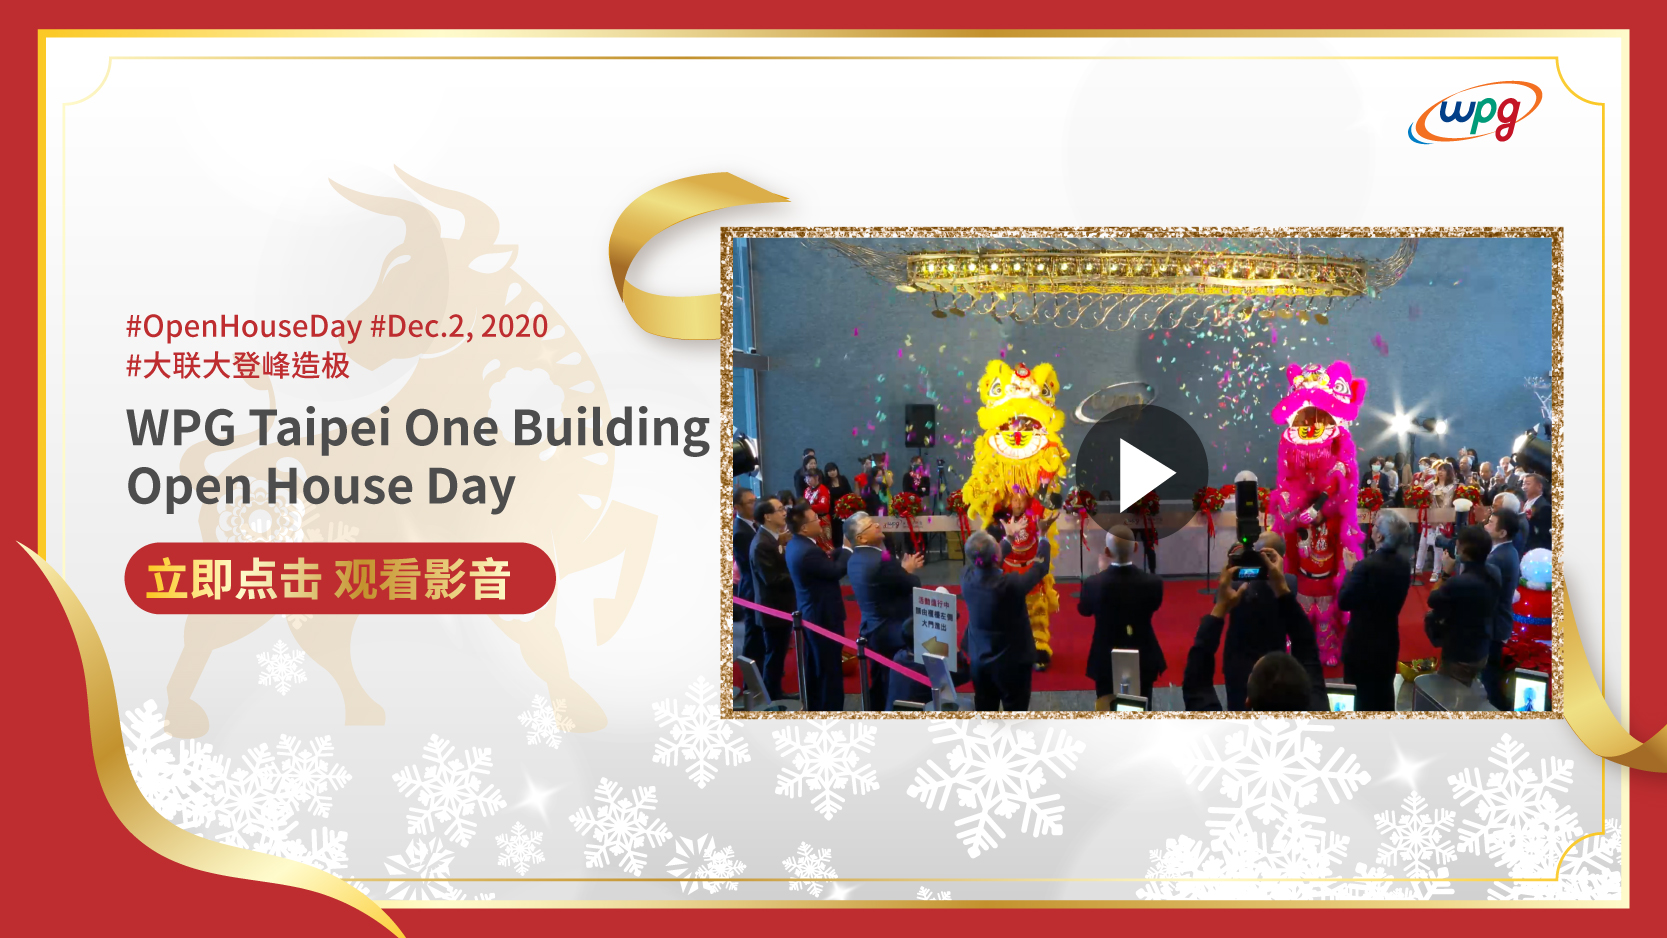 WPG Taipei One Building Open House Day (简中版)